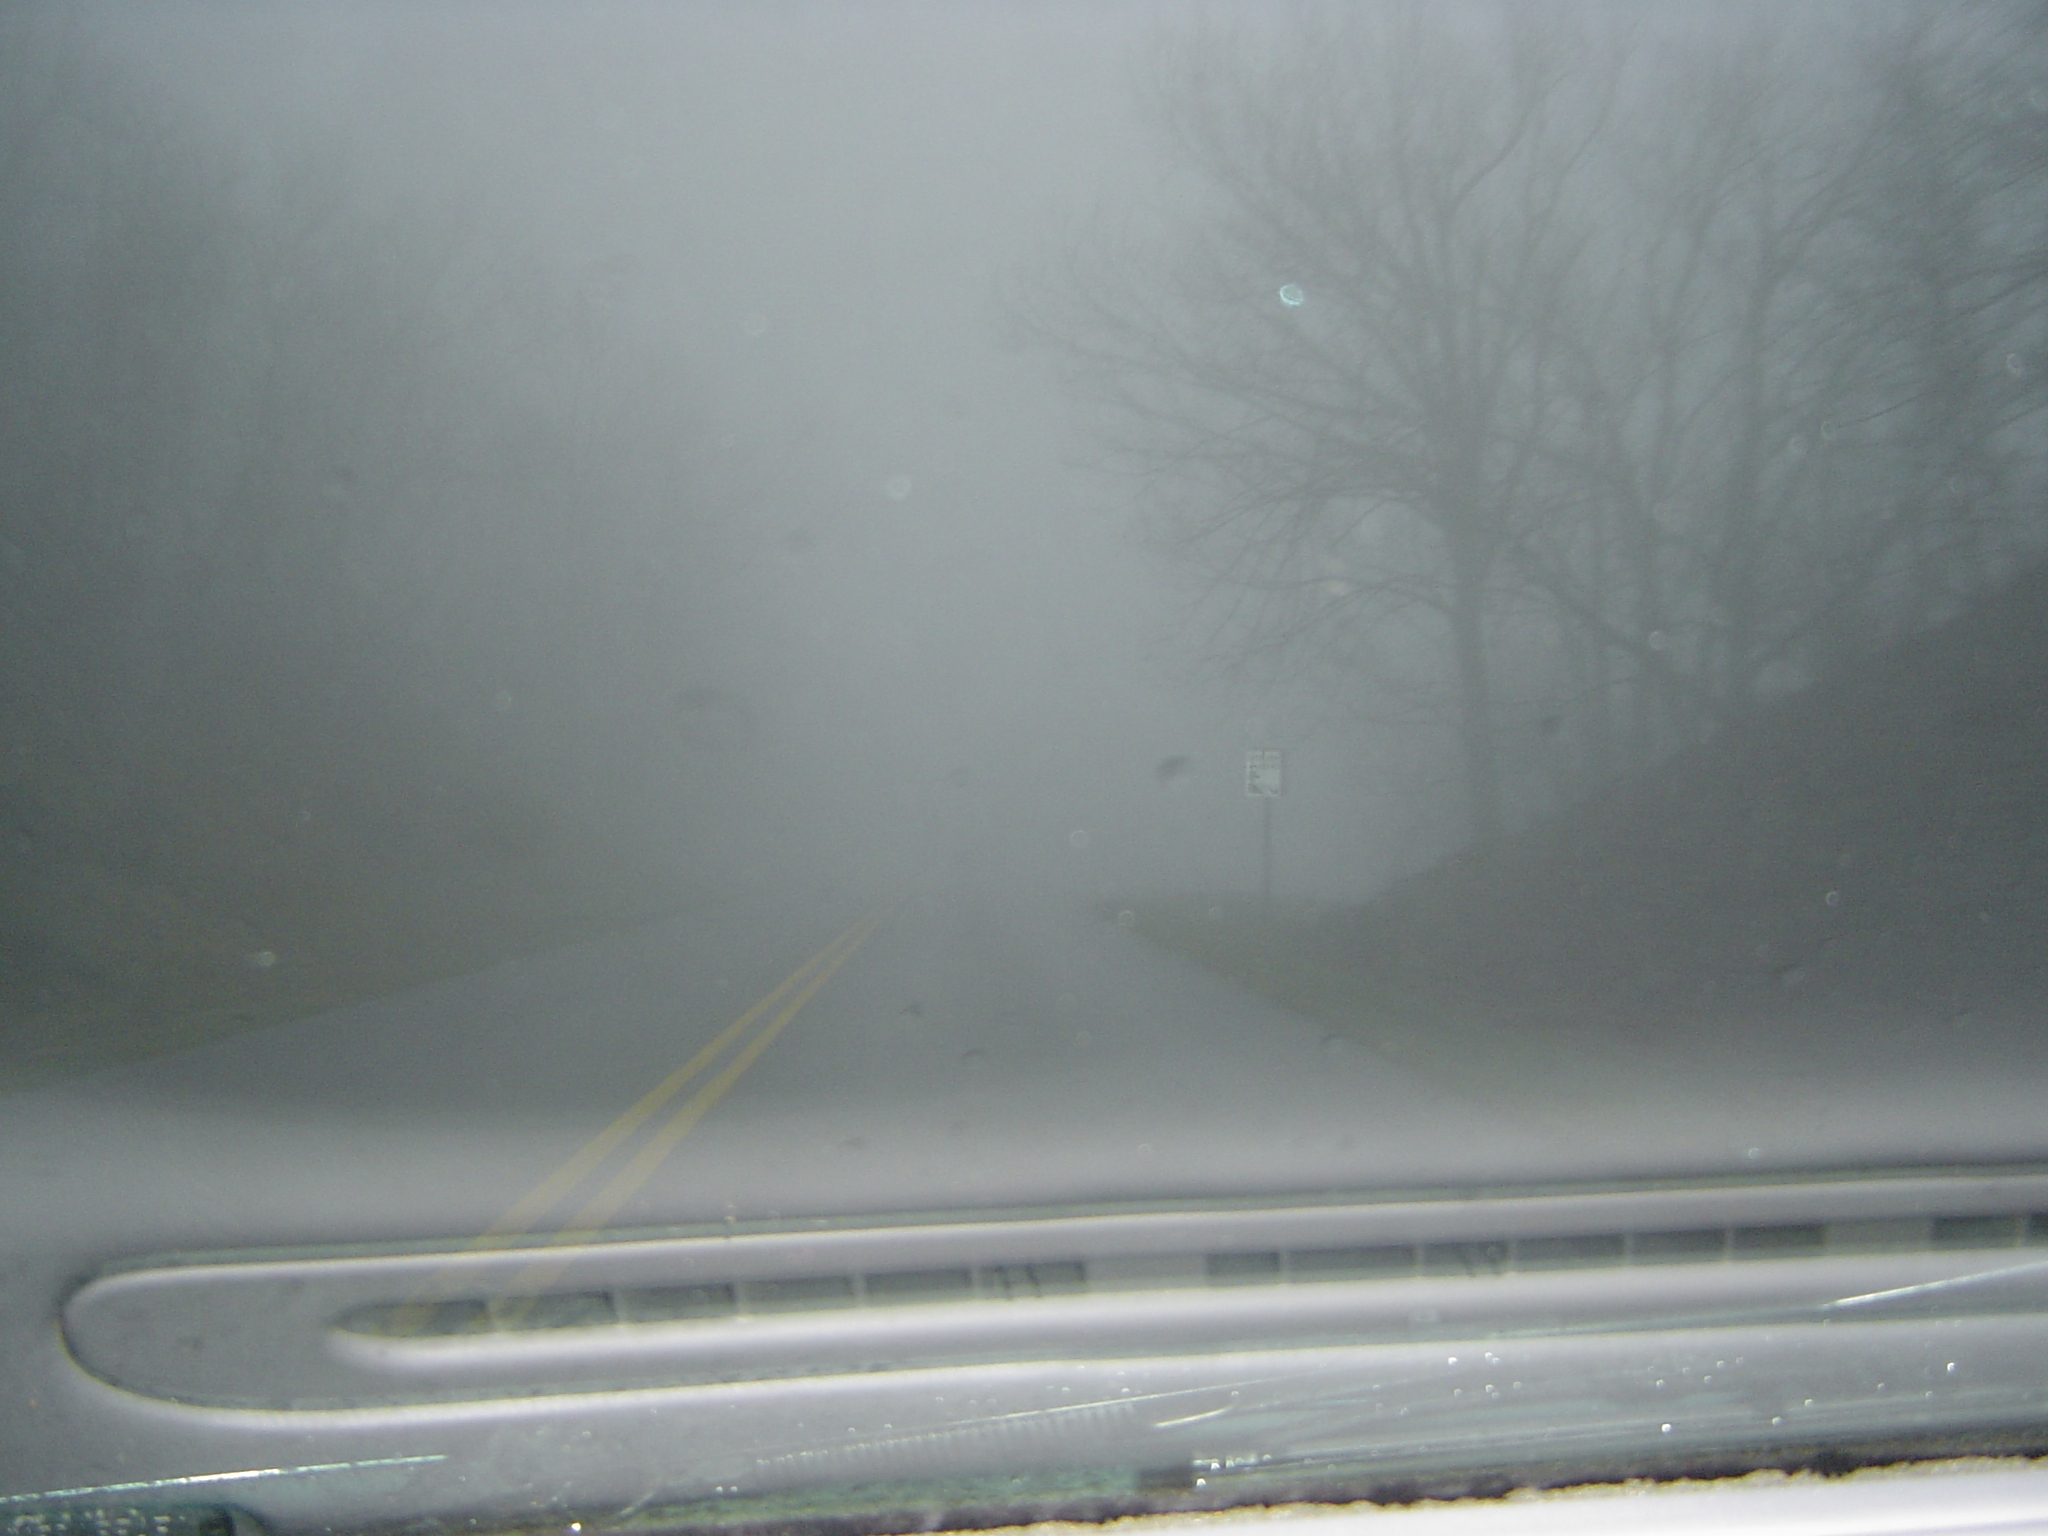 fog or mist on the road through the windscreen